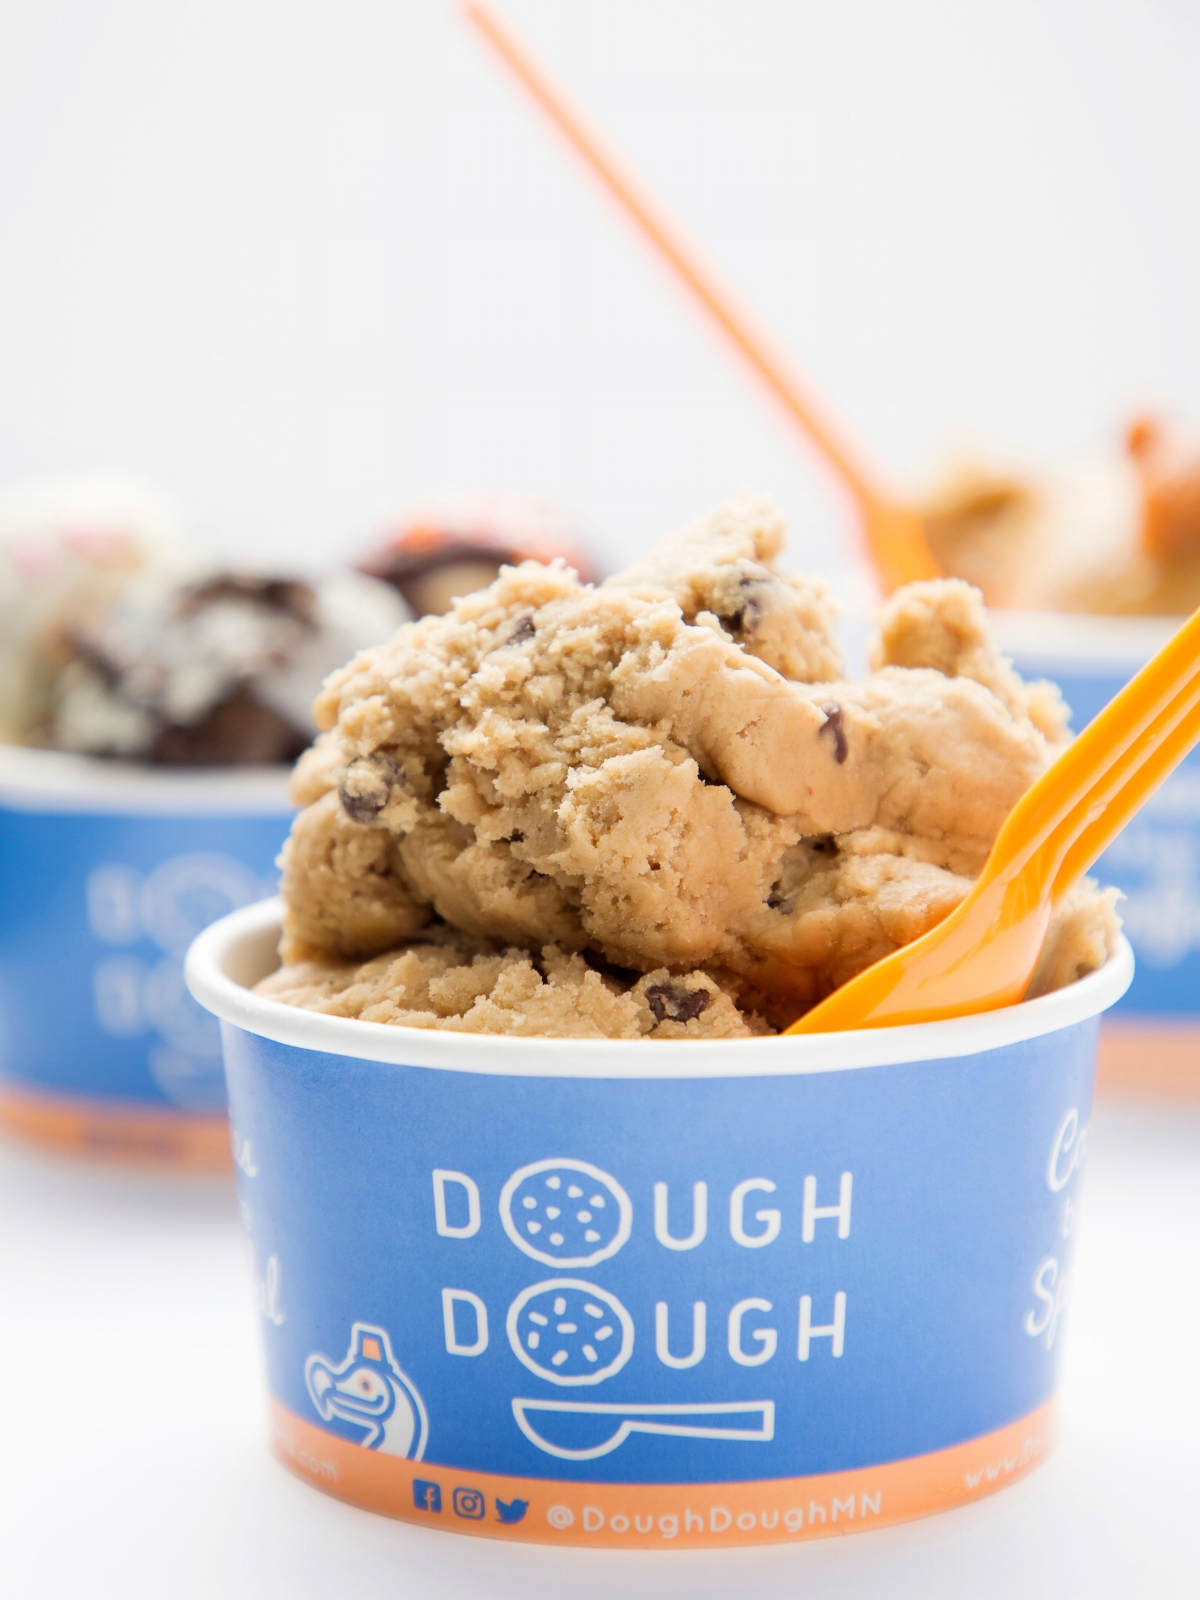 Dough Dough - -store front @ the Mall of America-dessert food truck-mobile tricycle service-cateringcontactus@doughdoughmn.com